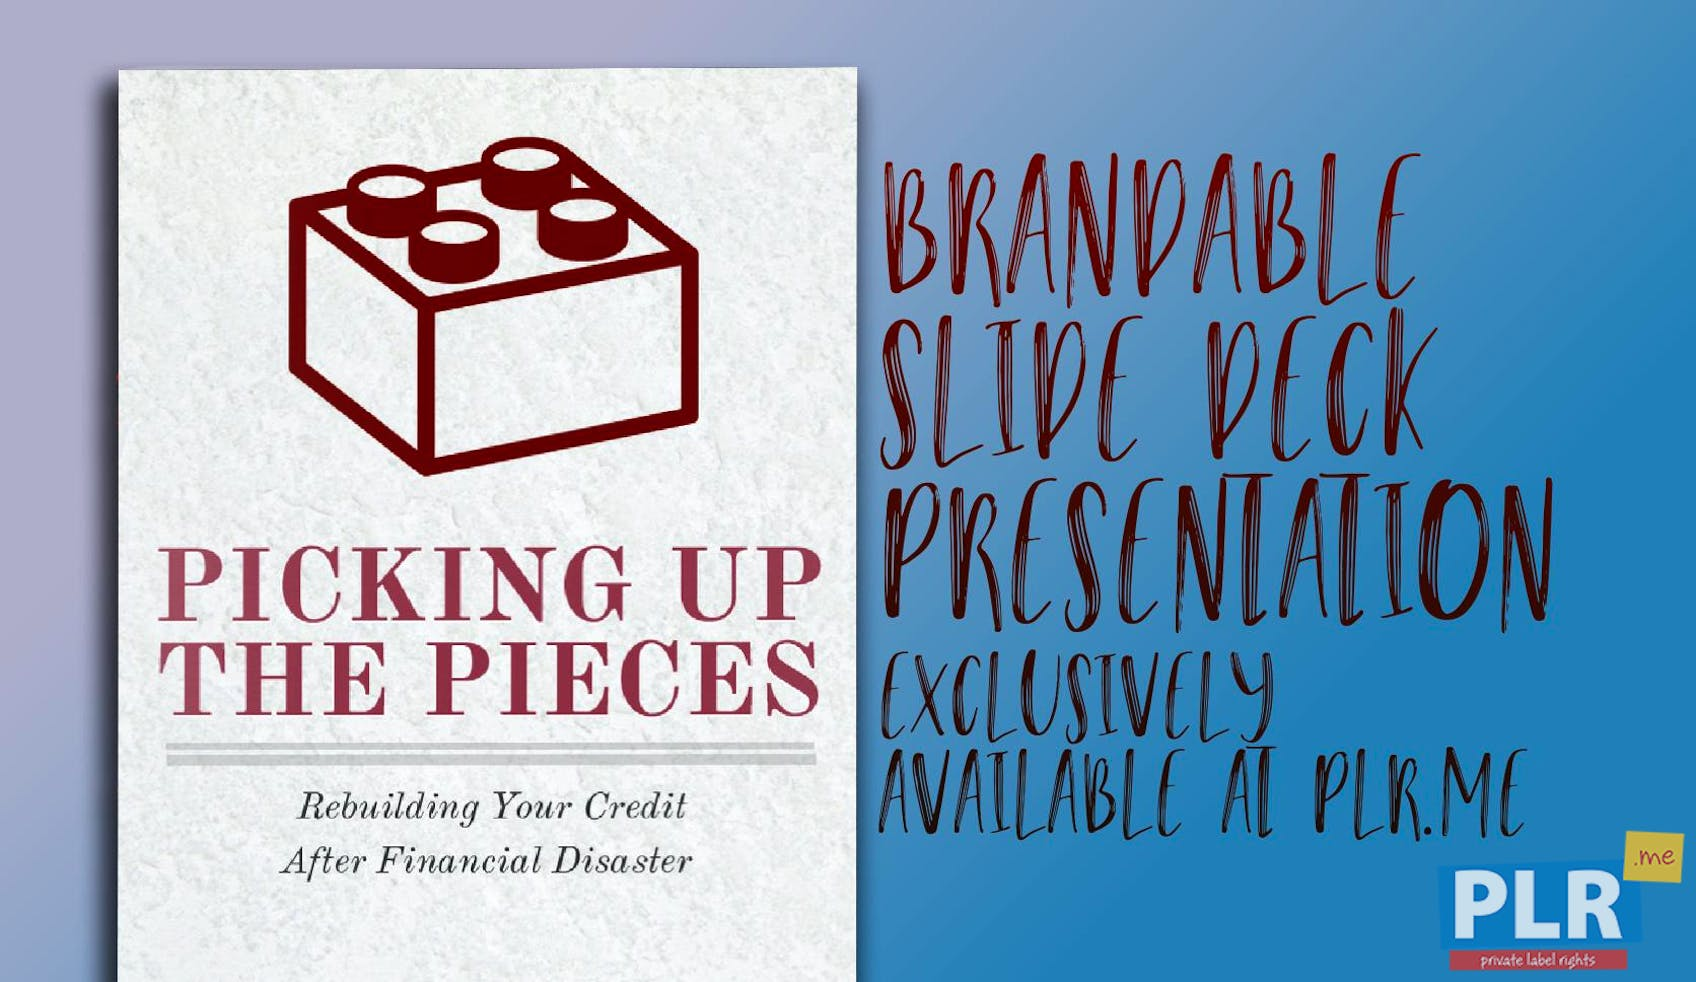 Picking Up The Pieces Rebuilding Your Credit After Financial Disaster